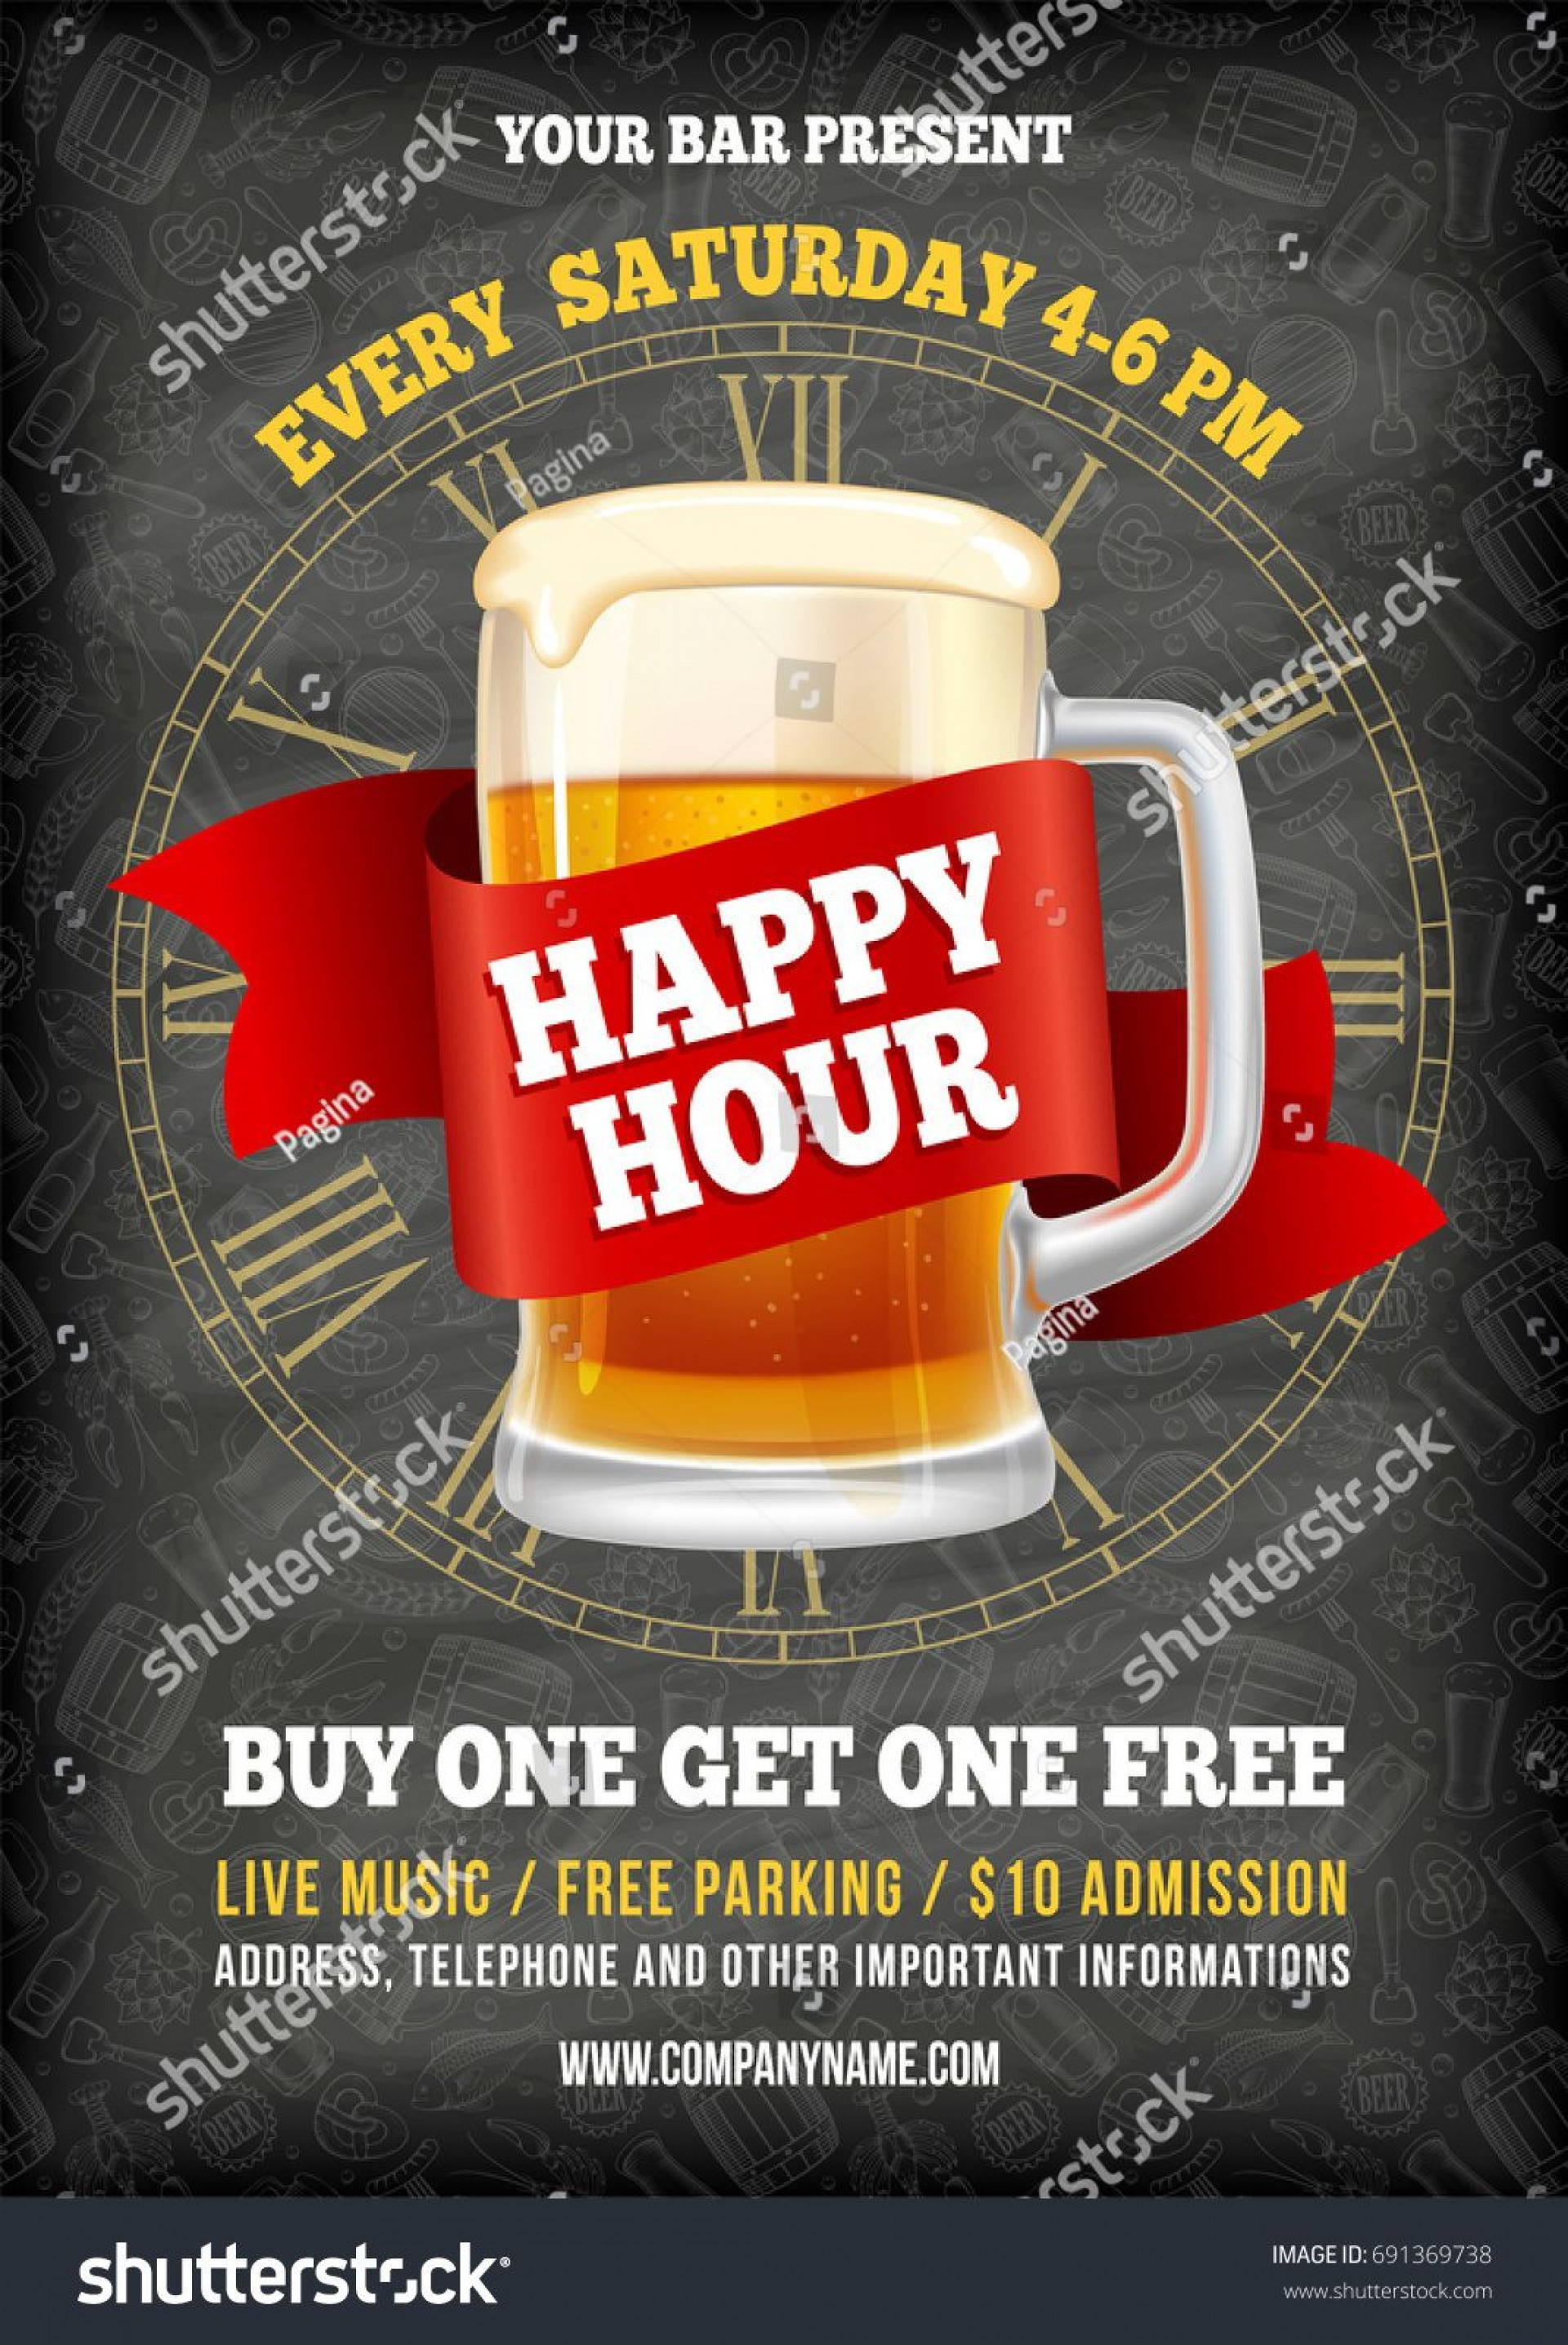 008 Surprising Happy Hour Invitation Template Image  Templates Free Word Farewell1920